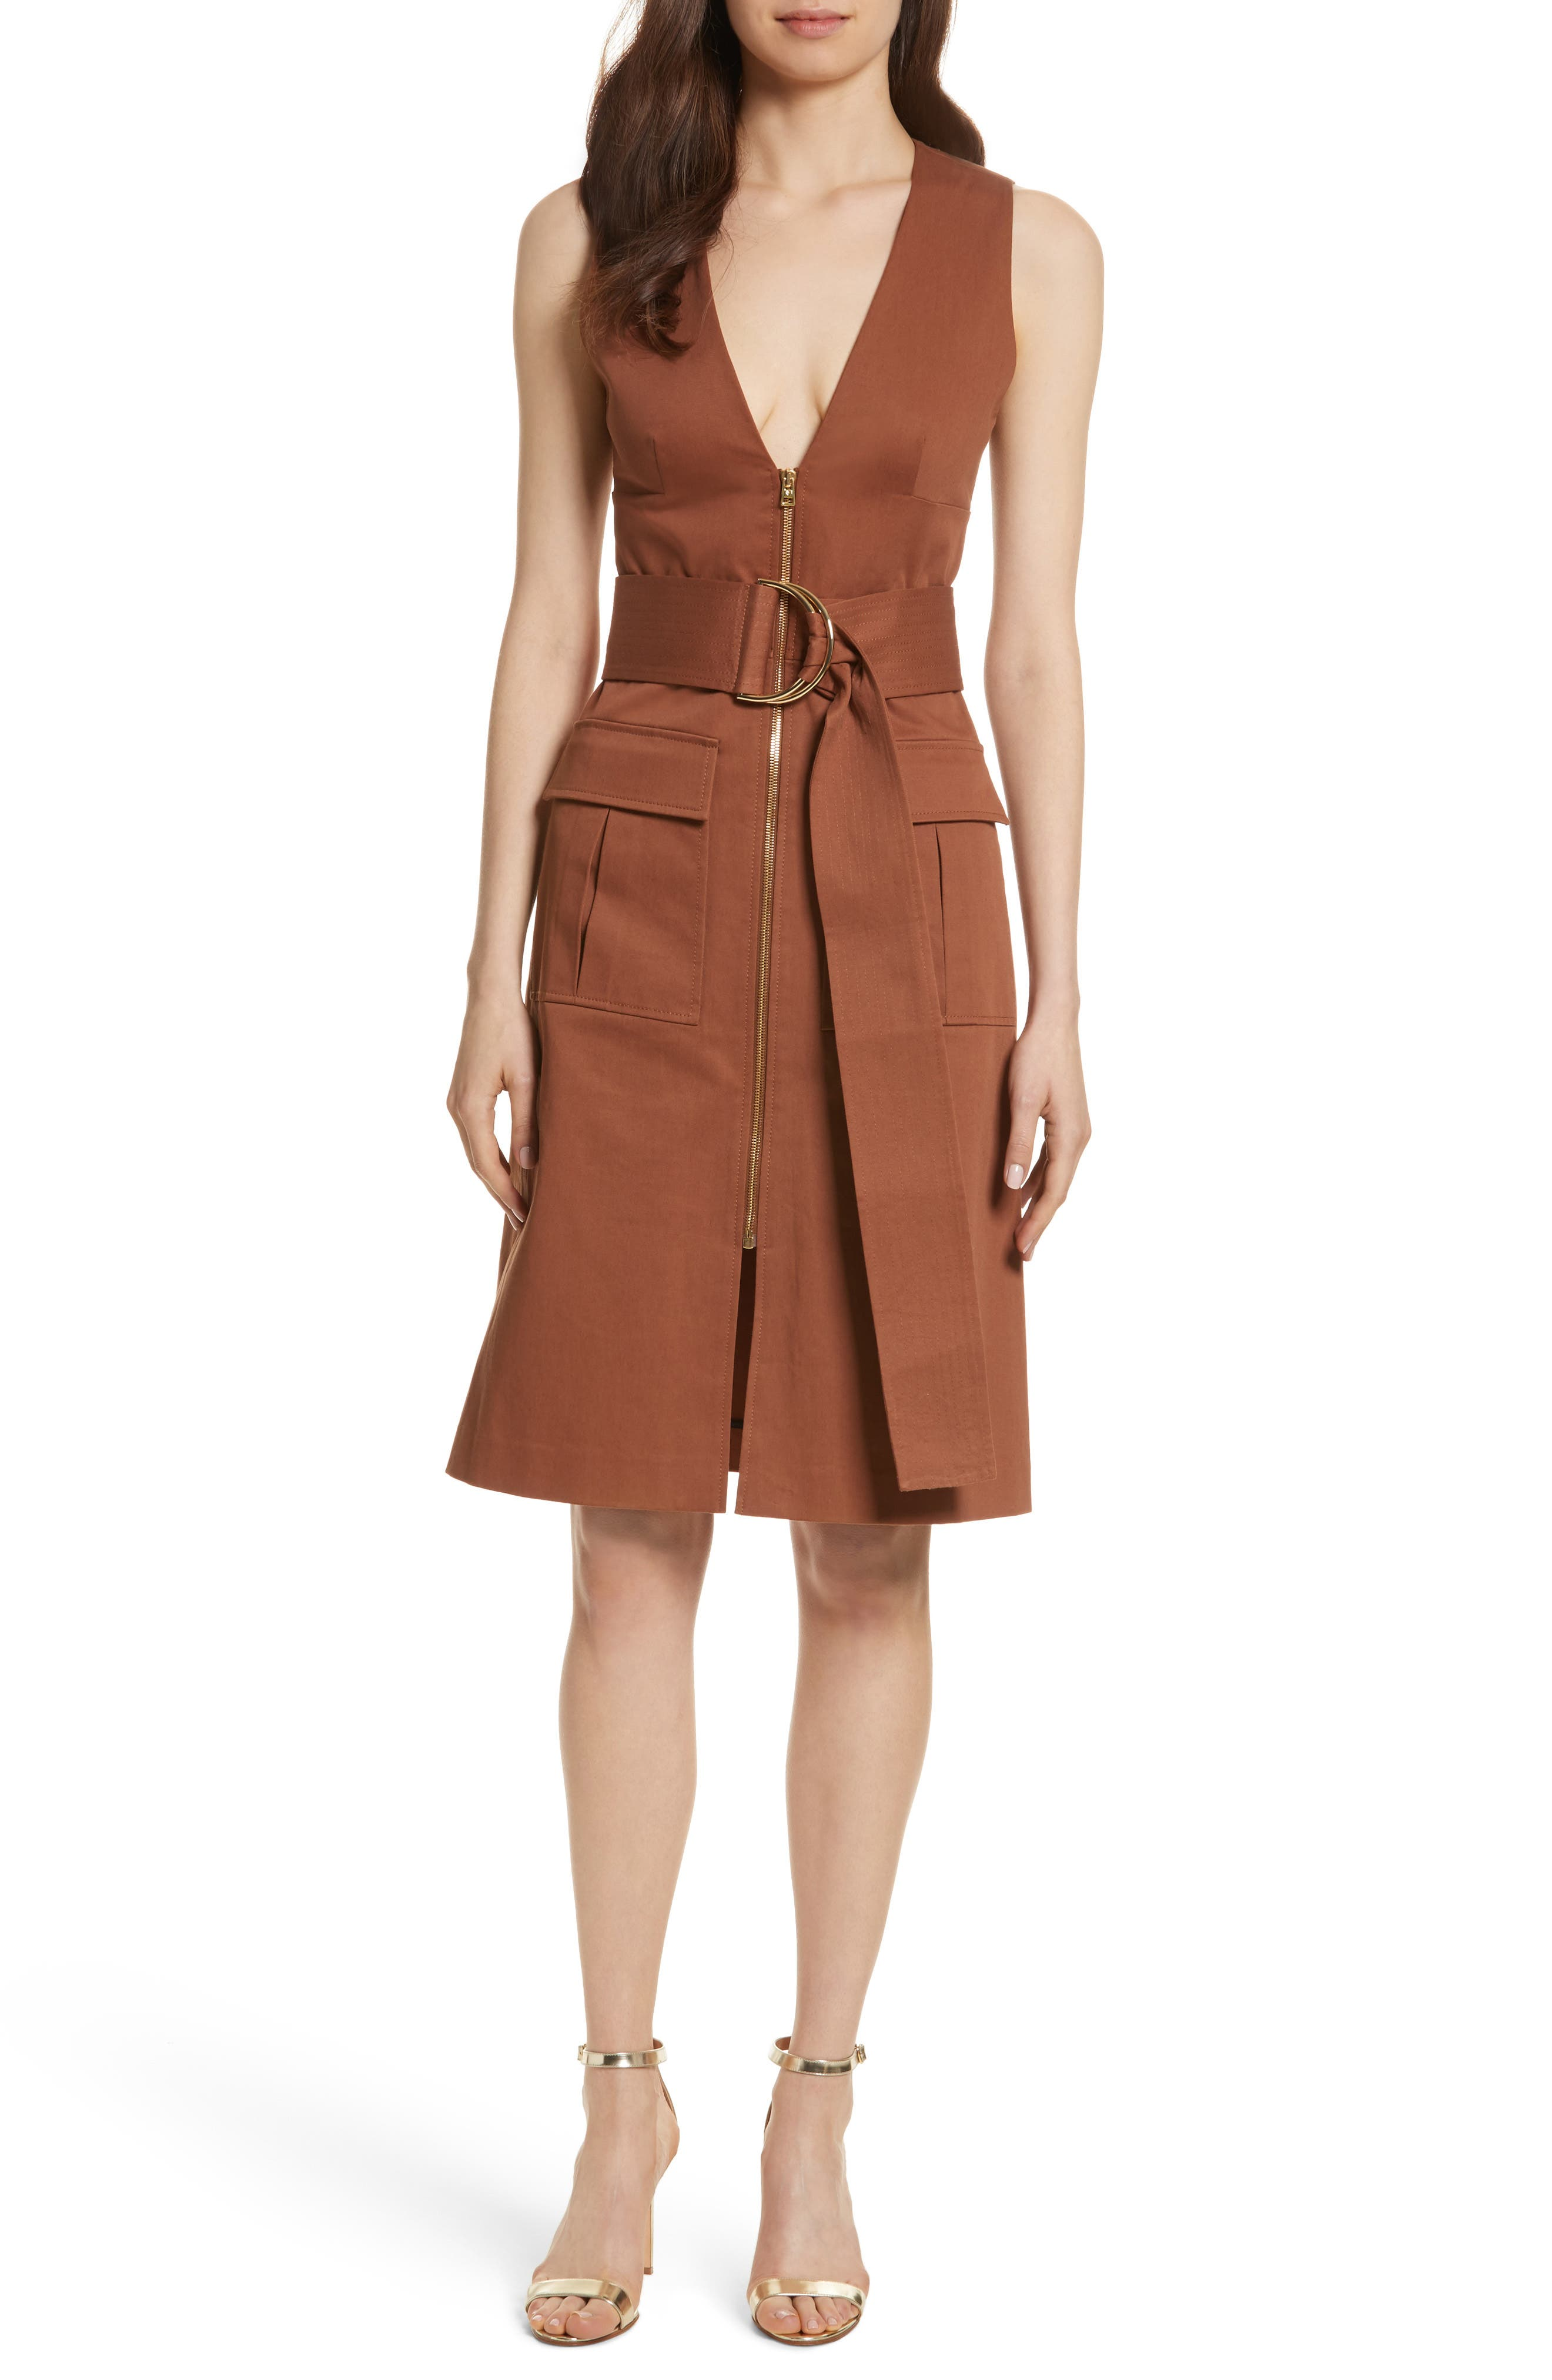 Diane von Furstenberg Zip Front Dress,                         Main,                         color, 203